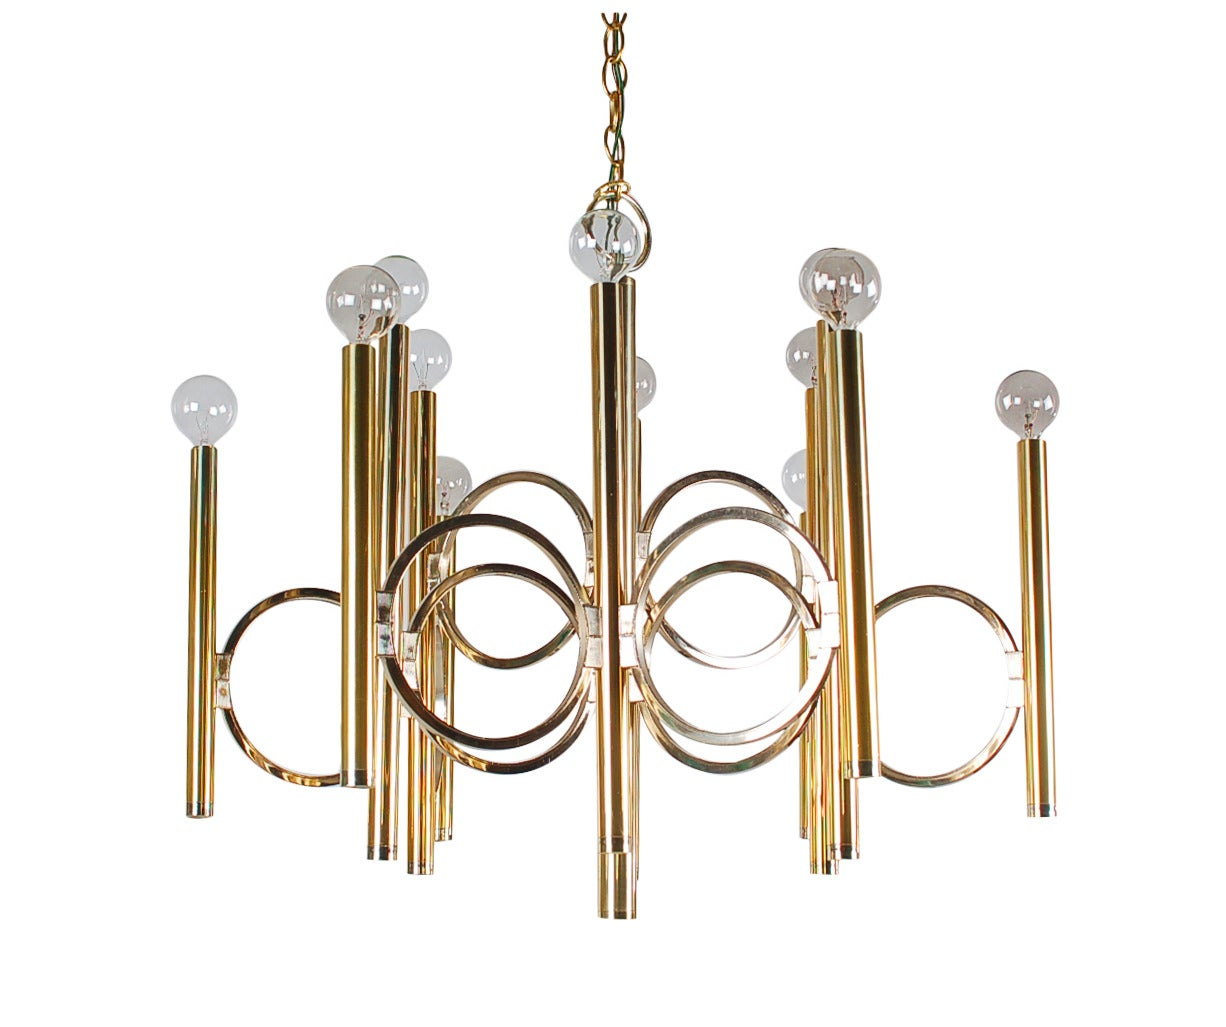 1970s Gaetano Sciolari for Lightolier chandelier, signed with manufacture label. Wired and in working condition. Takes 12 candelabra bulbs, 40W-max each. Measure: 13